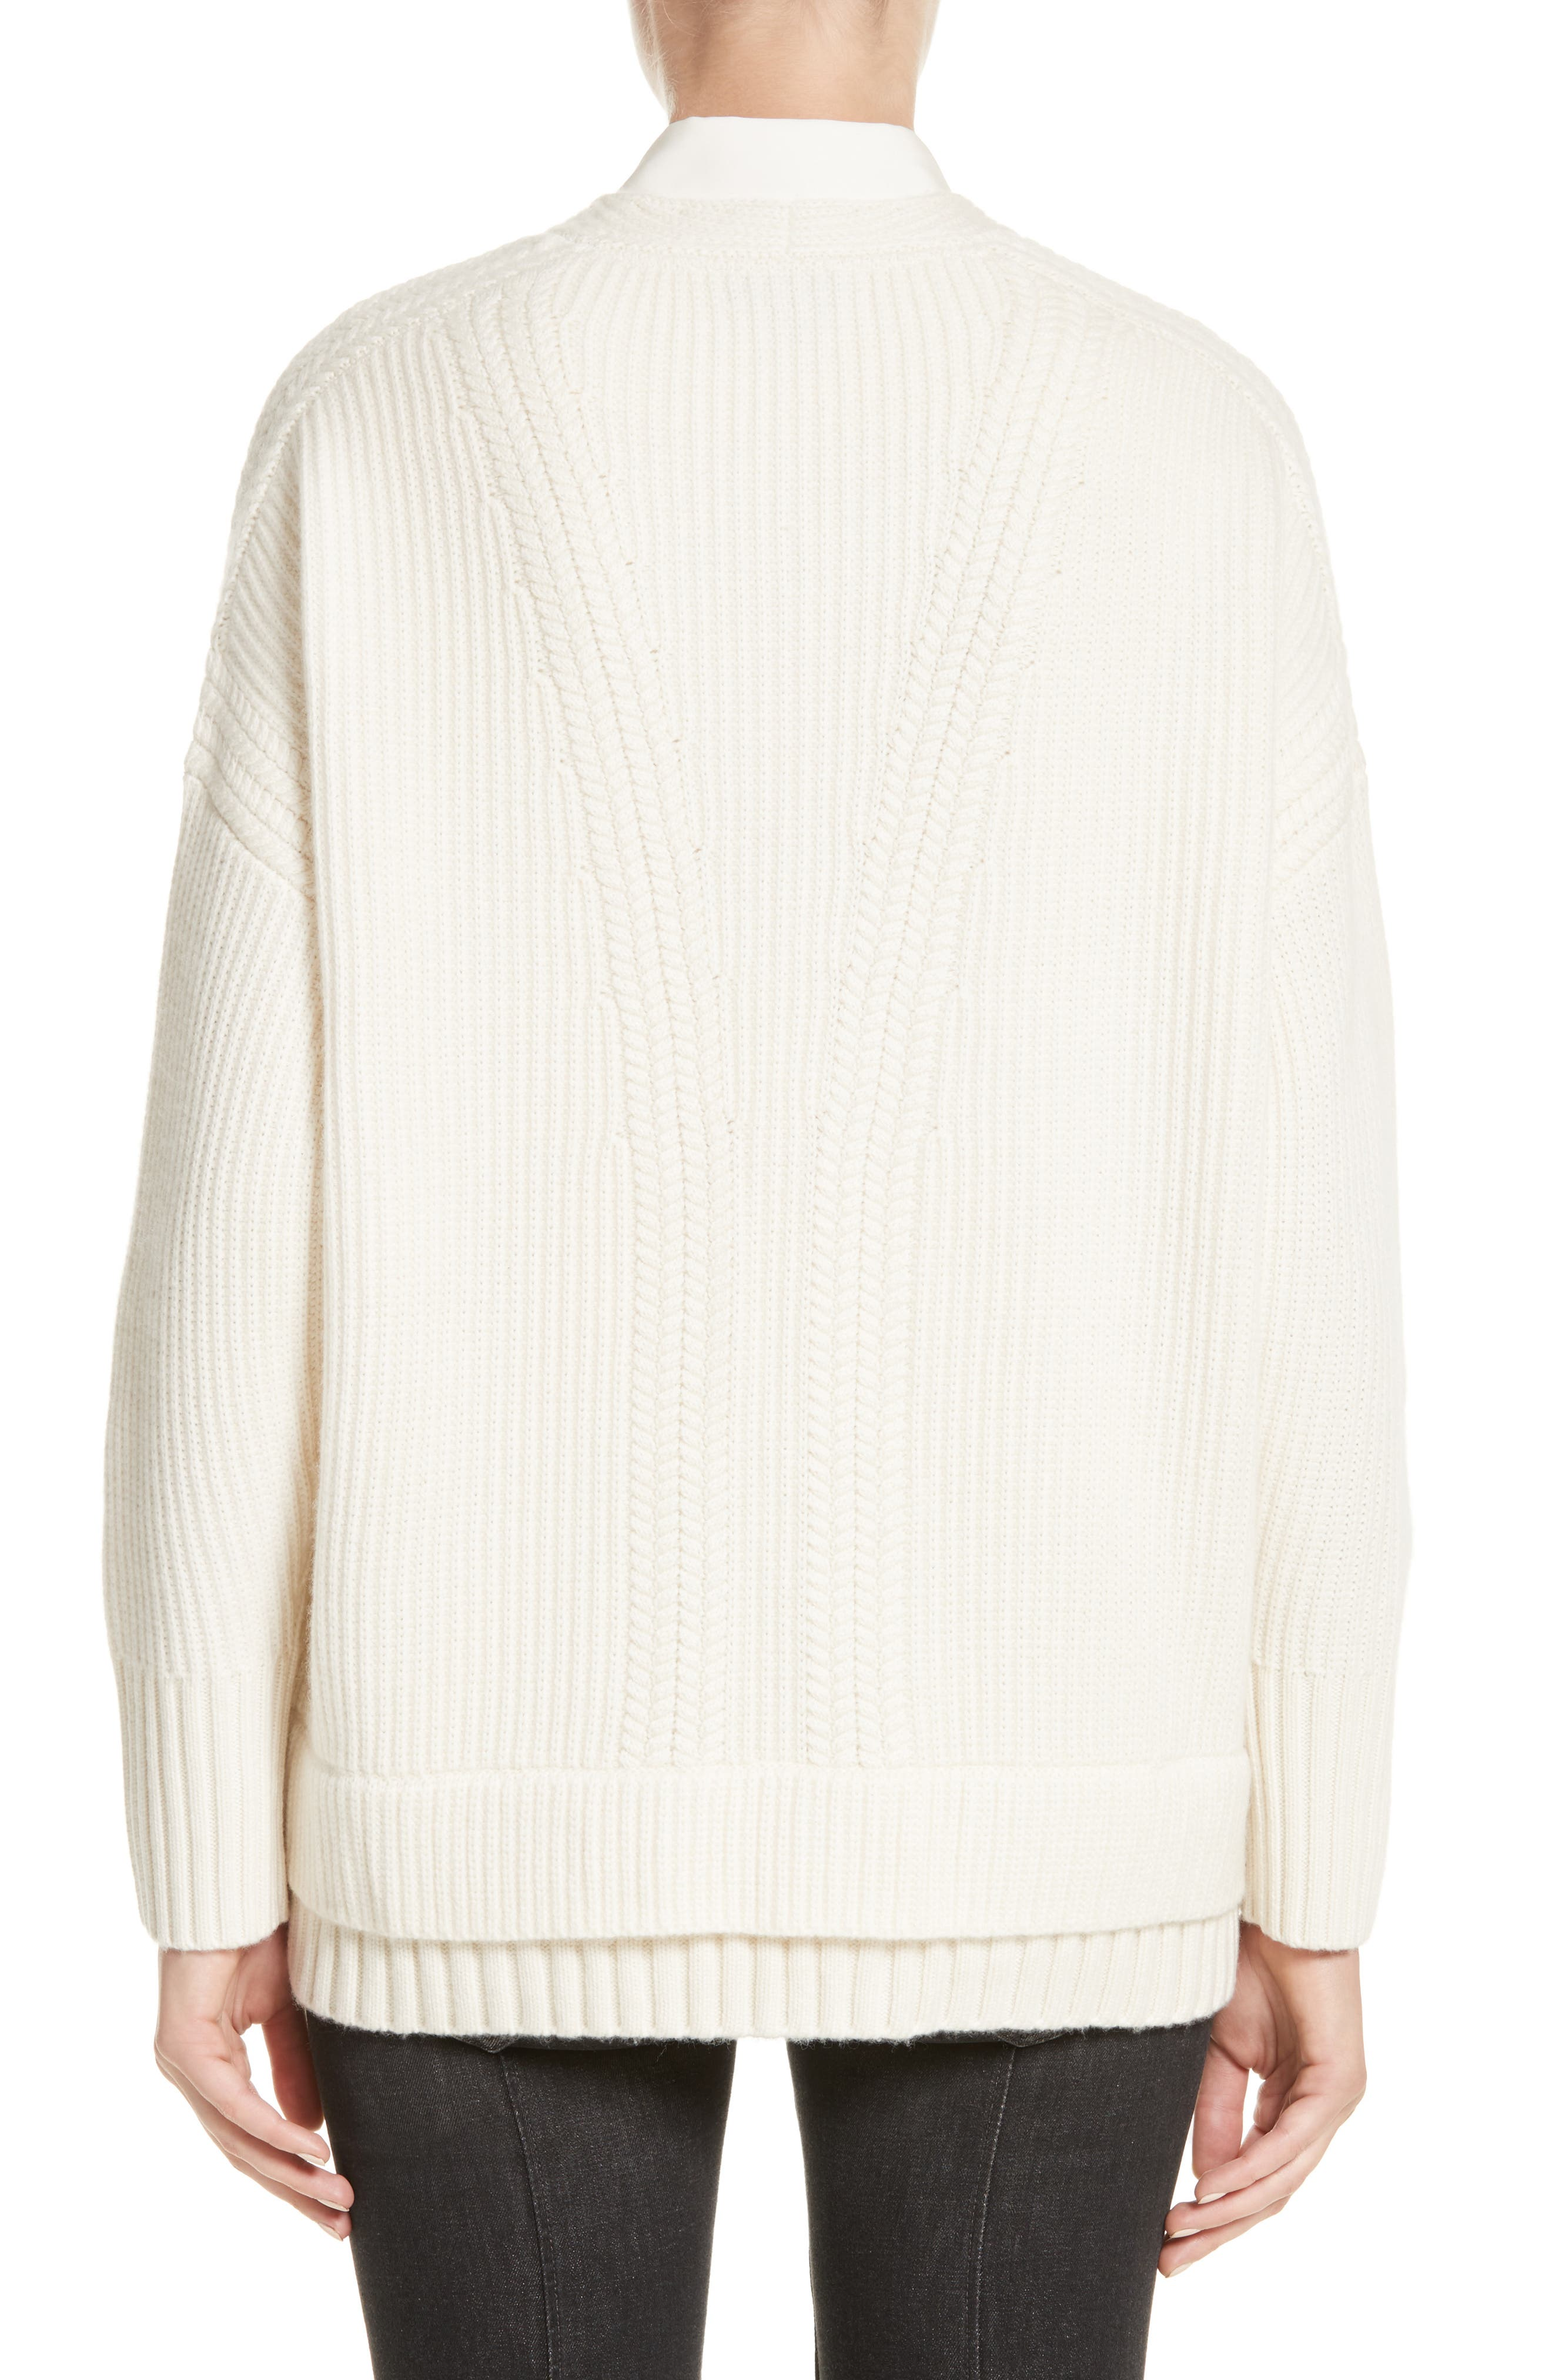 Santerno Wool & Cashmere Cable Knit Sweater,                             Alternate thumbnail 2, color,                             Natural White